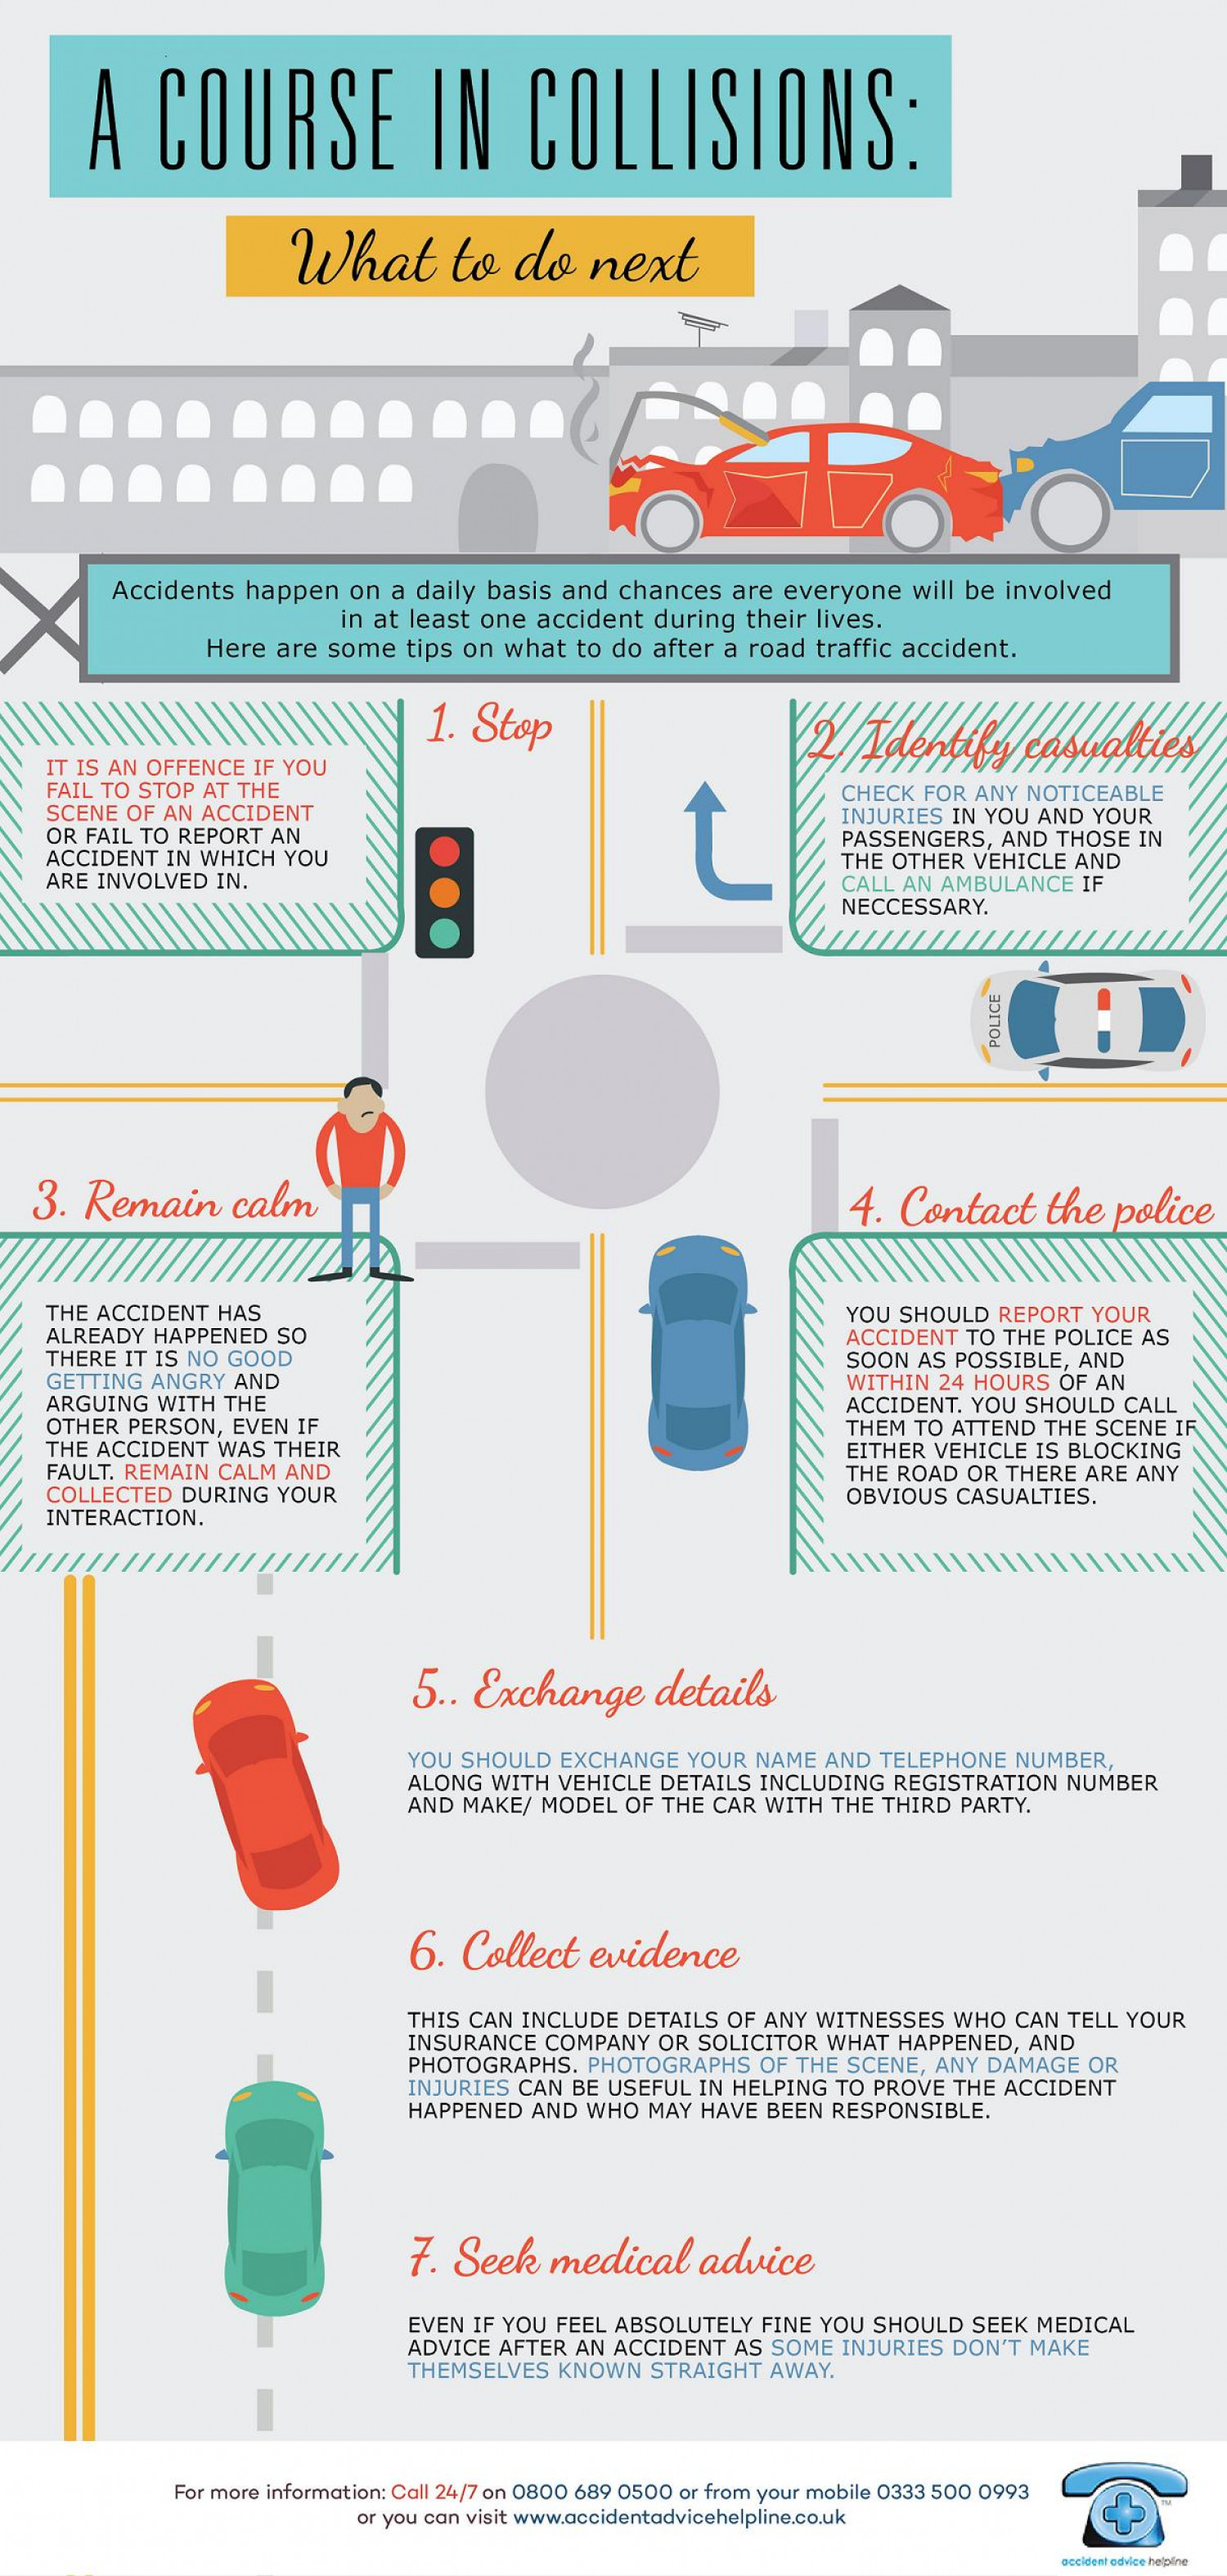 A Course In Collisions: What To Do Next Infographic